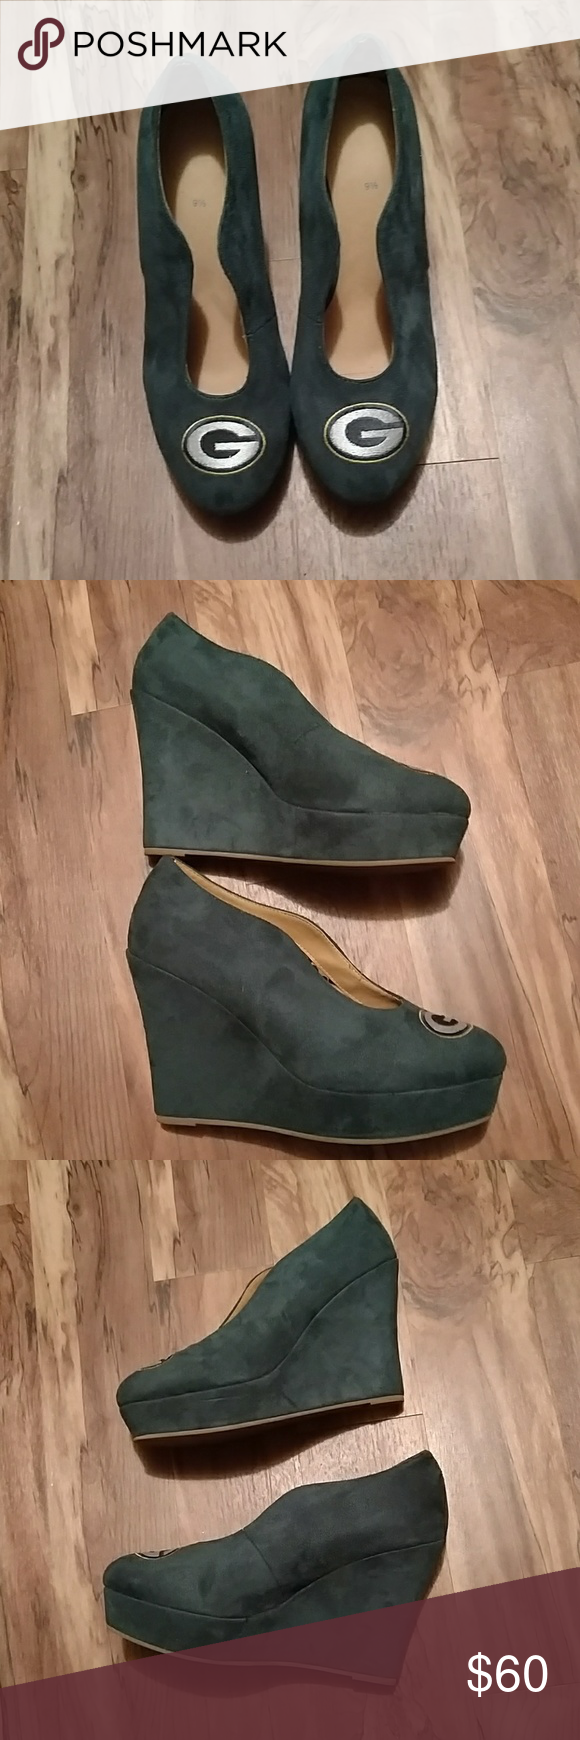 32a83ab7 Women's Green Bay Packers wedge heels Brand New, never worn unknown ...